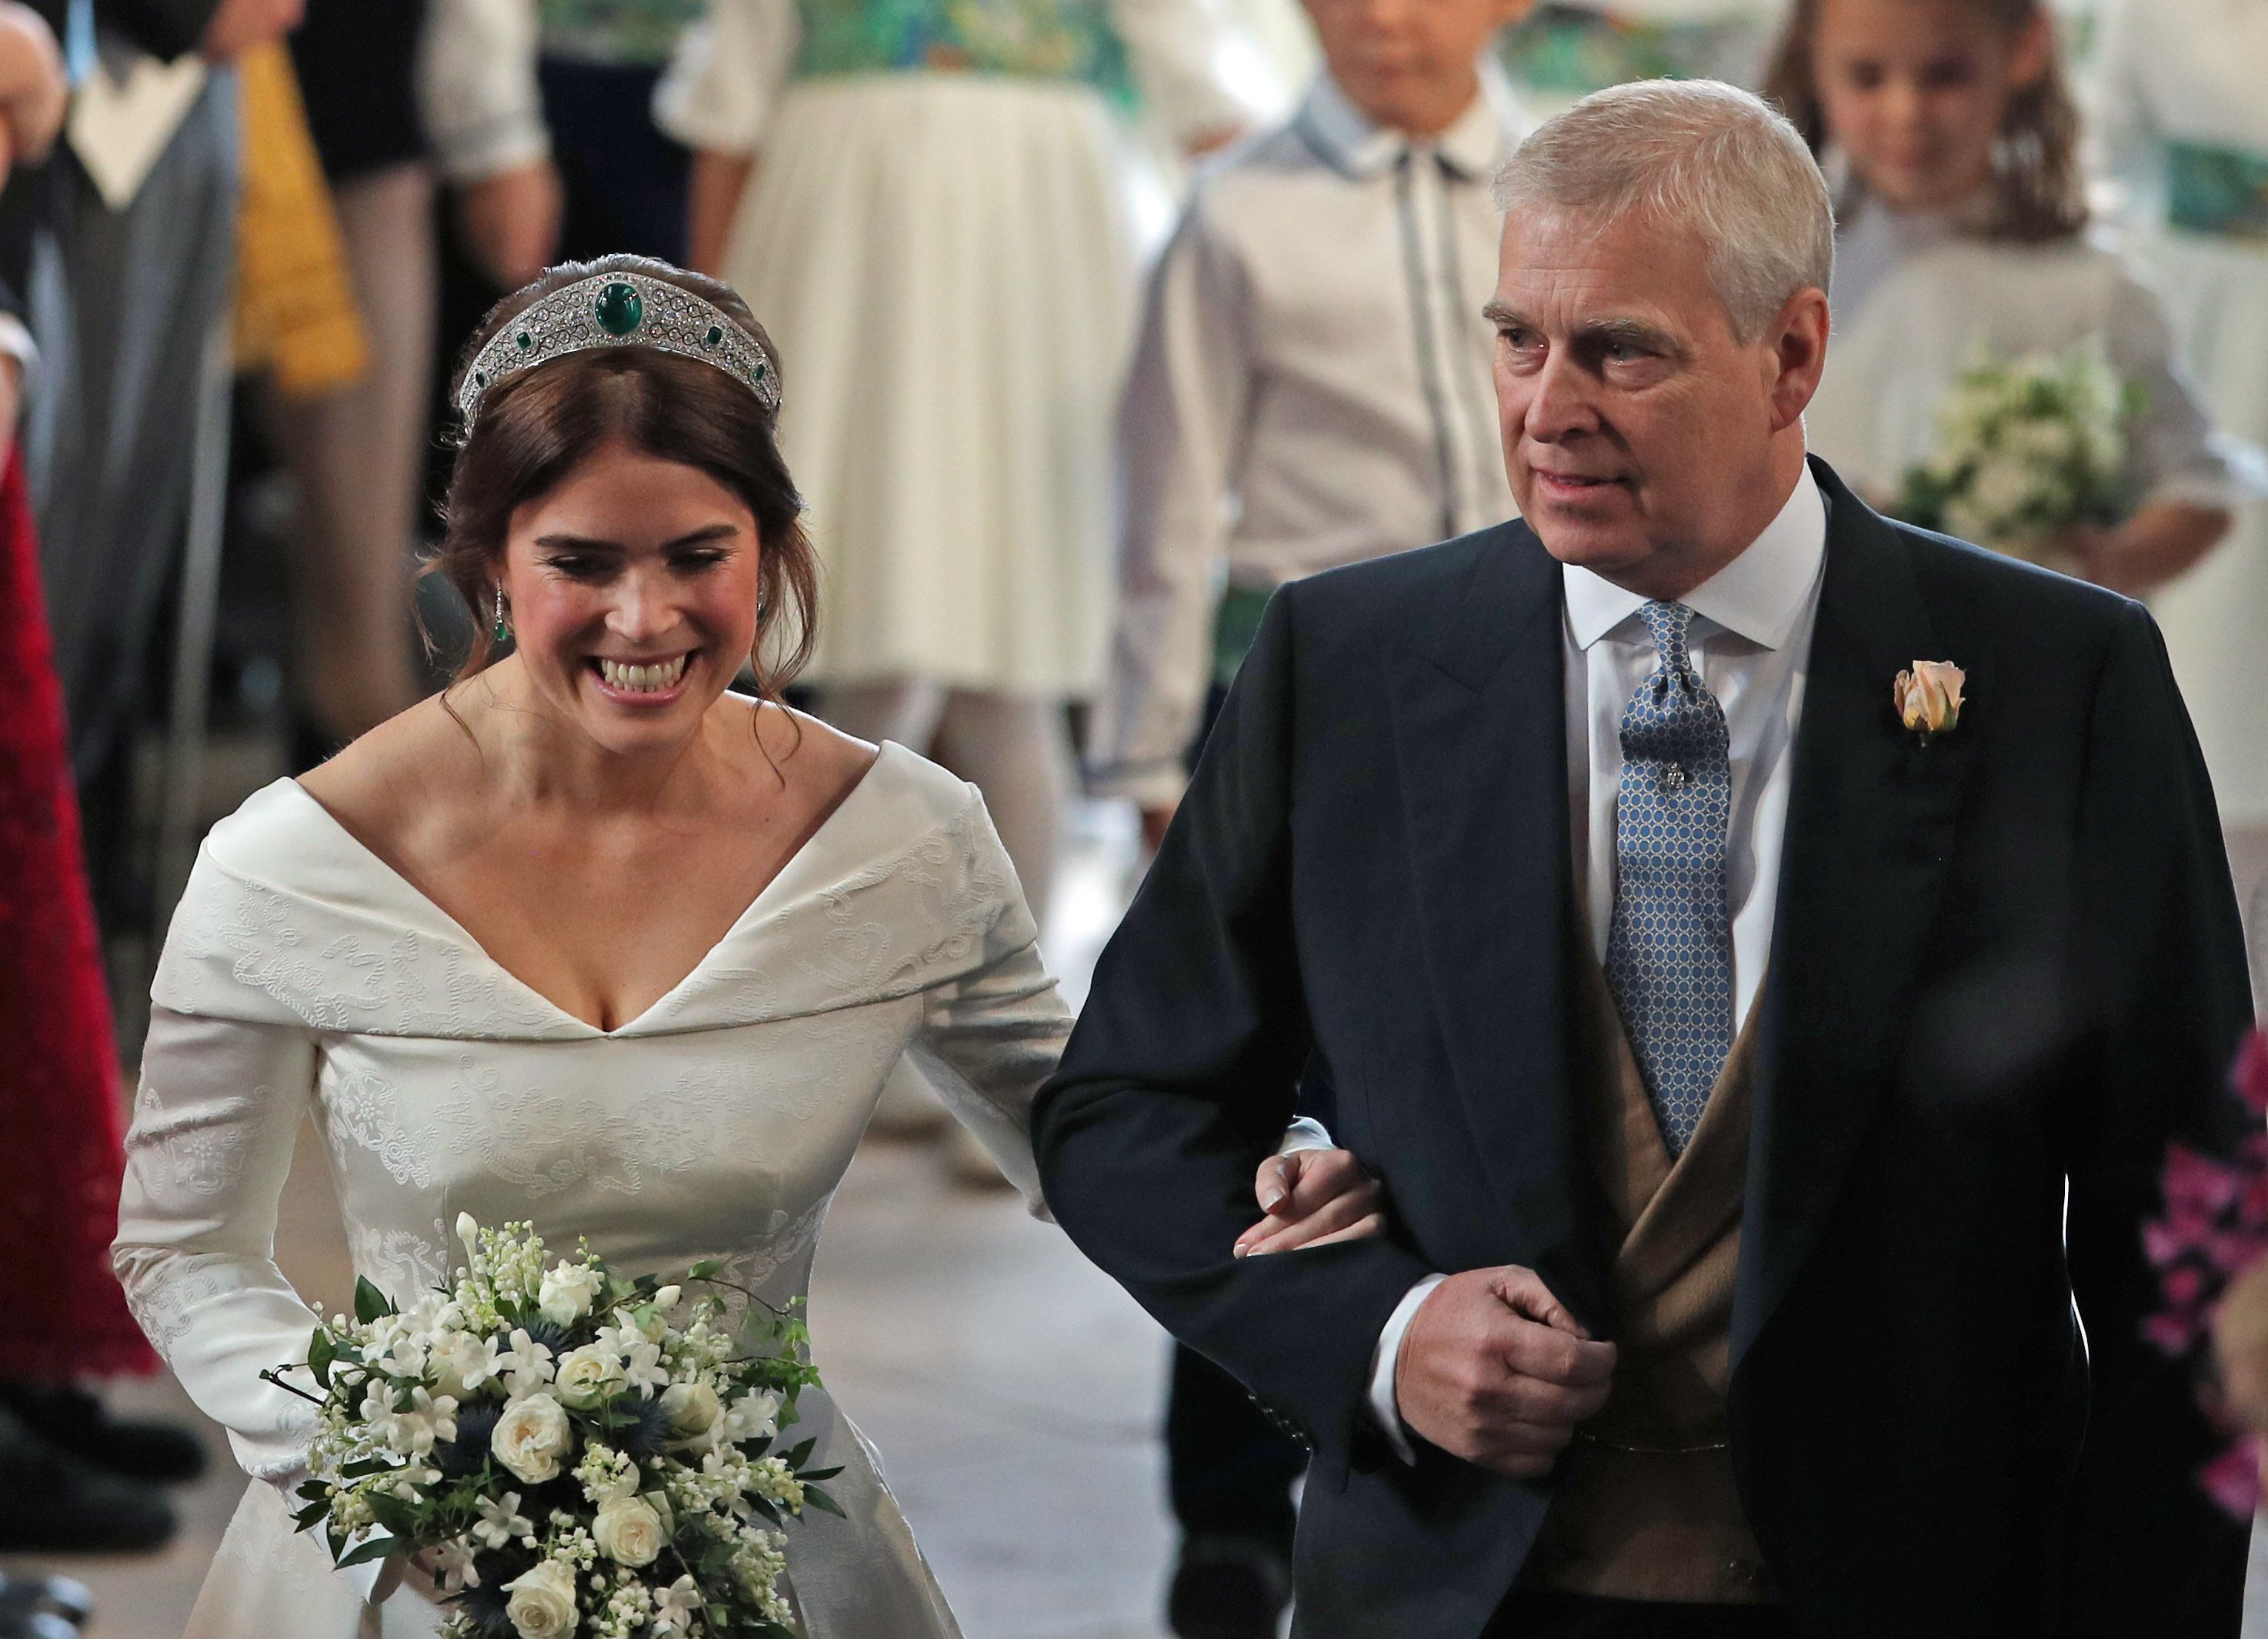 Princess Eugenie Wedding.Princess Eugenie Royal Wedding Photos Pictures Of The 2nd Royal